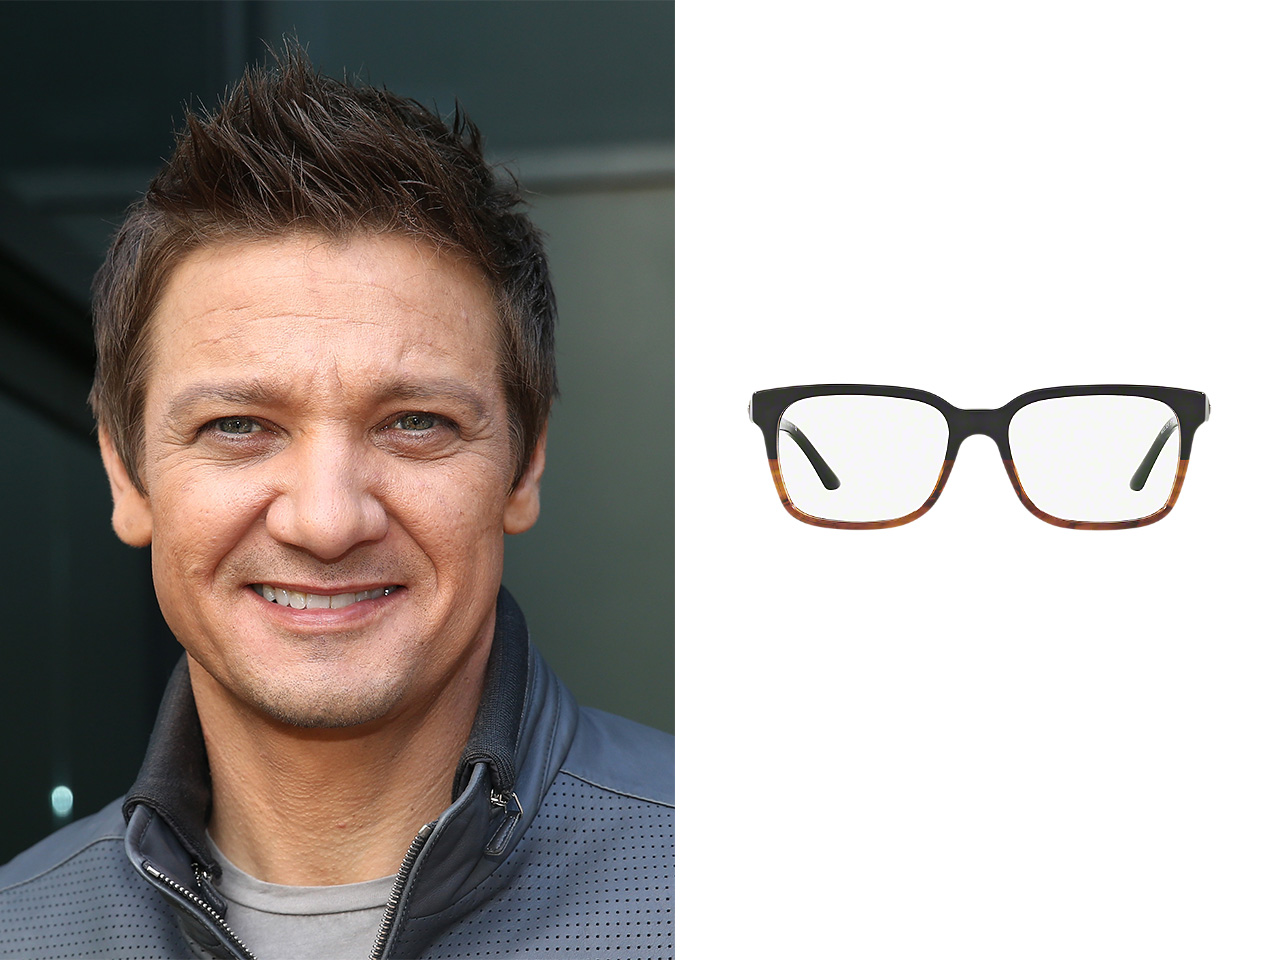 9721876c2d8 How to choose the best glasses according to your face shape